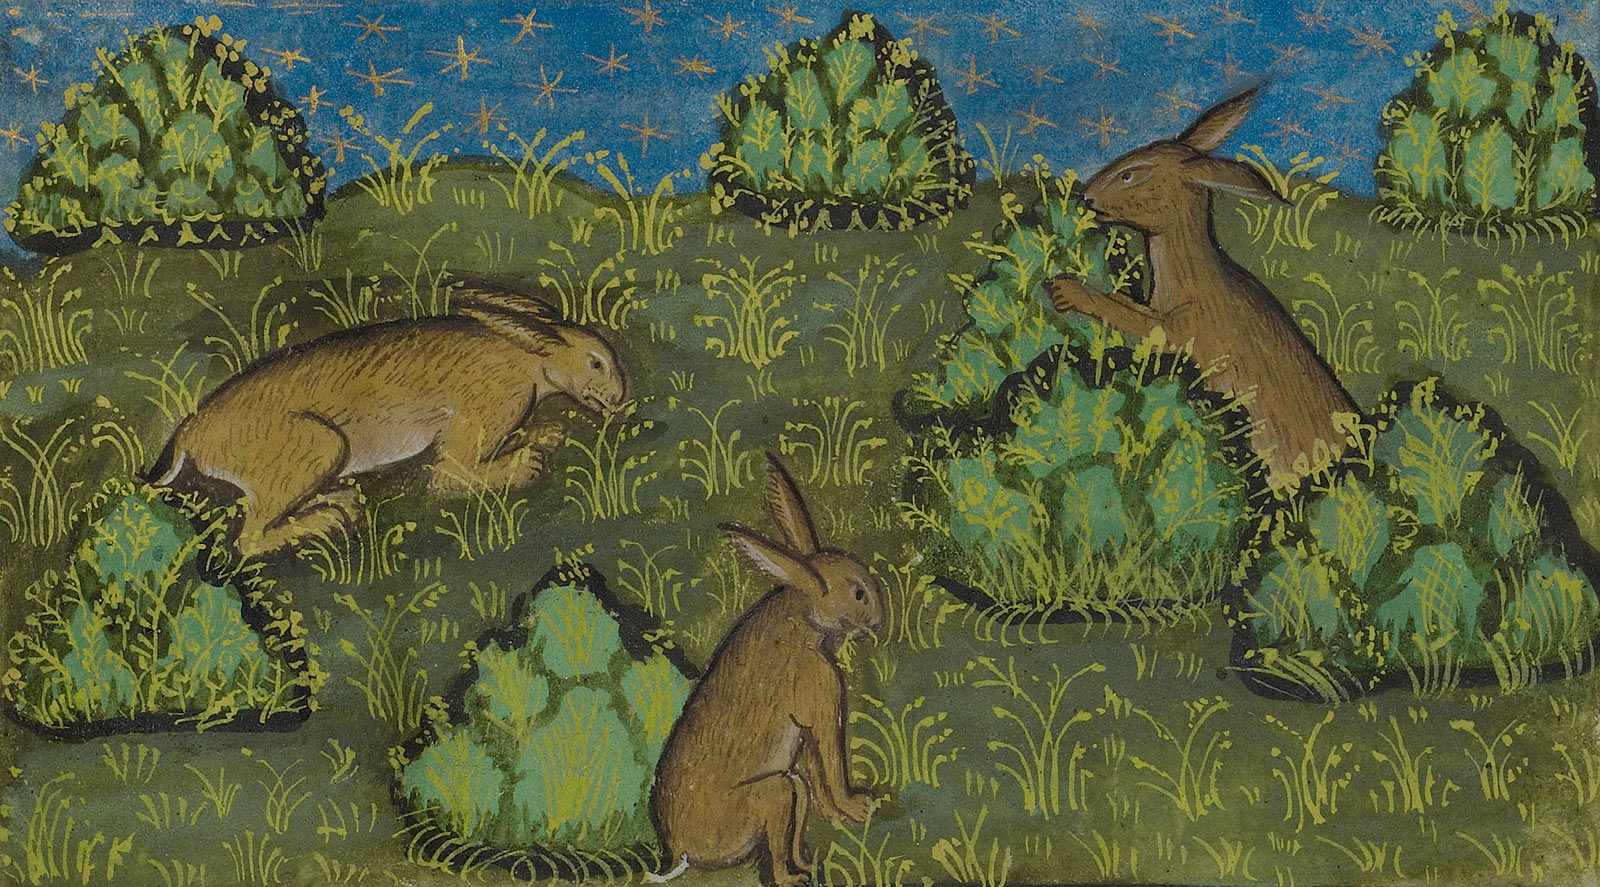 Illustration of three bunnies in a field with puffy bushes